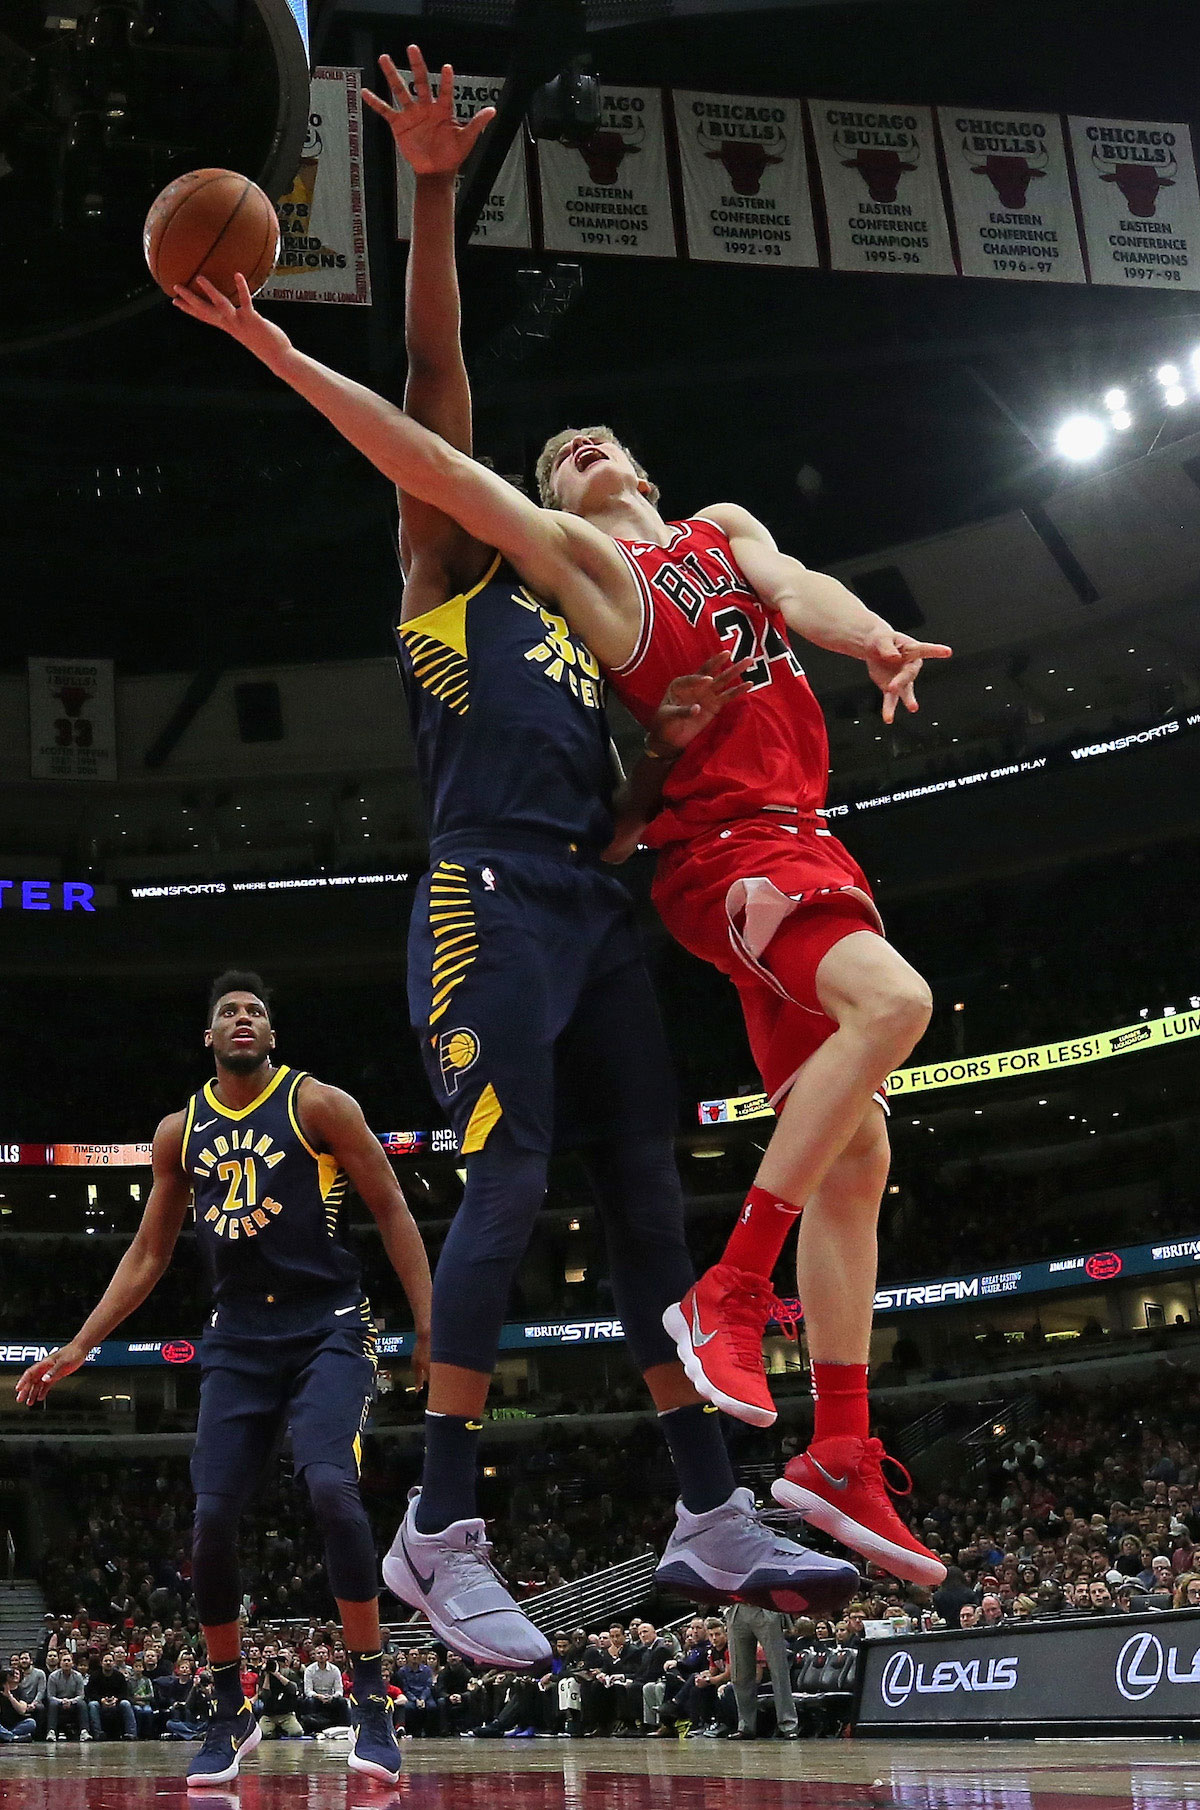 Lauri Markkanen #24 of the Chicago Bulls puts up a shot against Myles Turner #33 of the Indiana Pacers